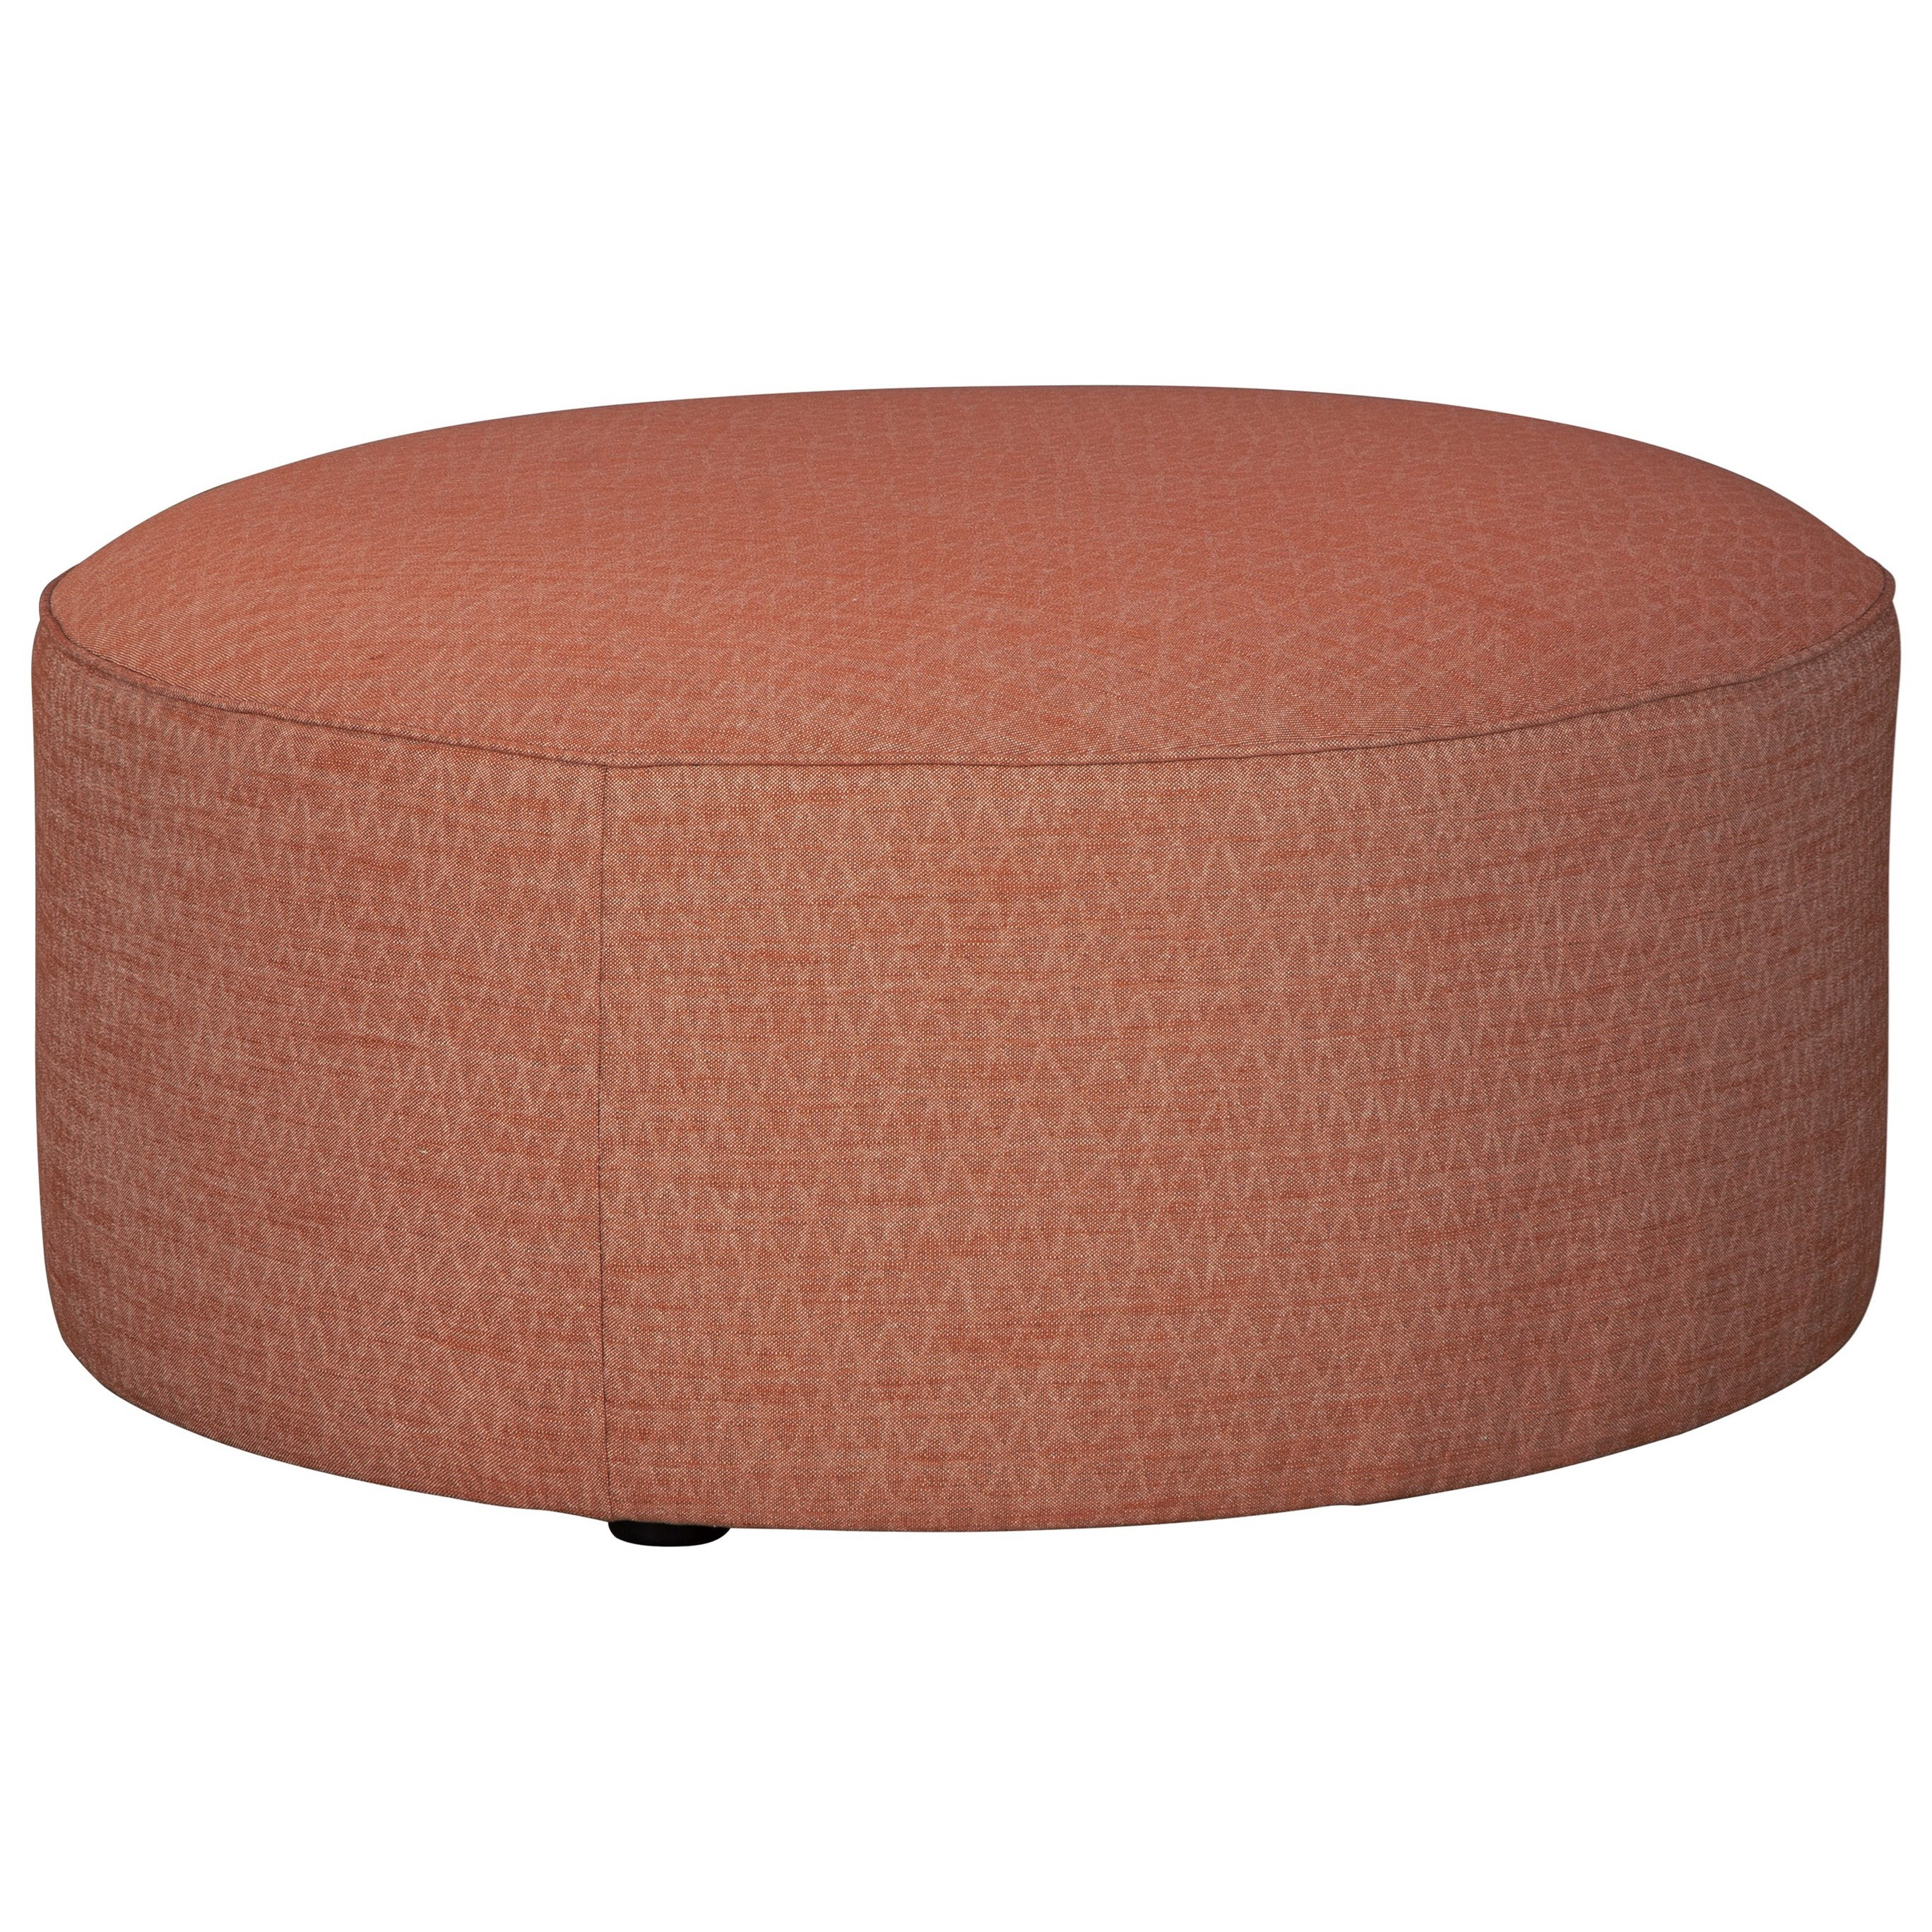 Almanza Oversized Accent Ottoman by Ashley (Signature Design) at Johnny Janosik